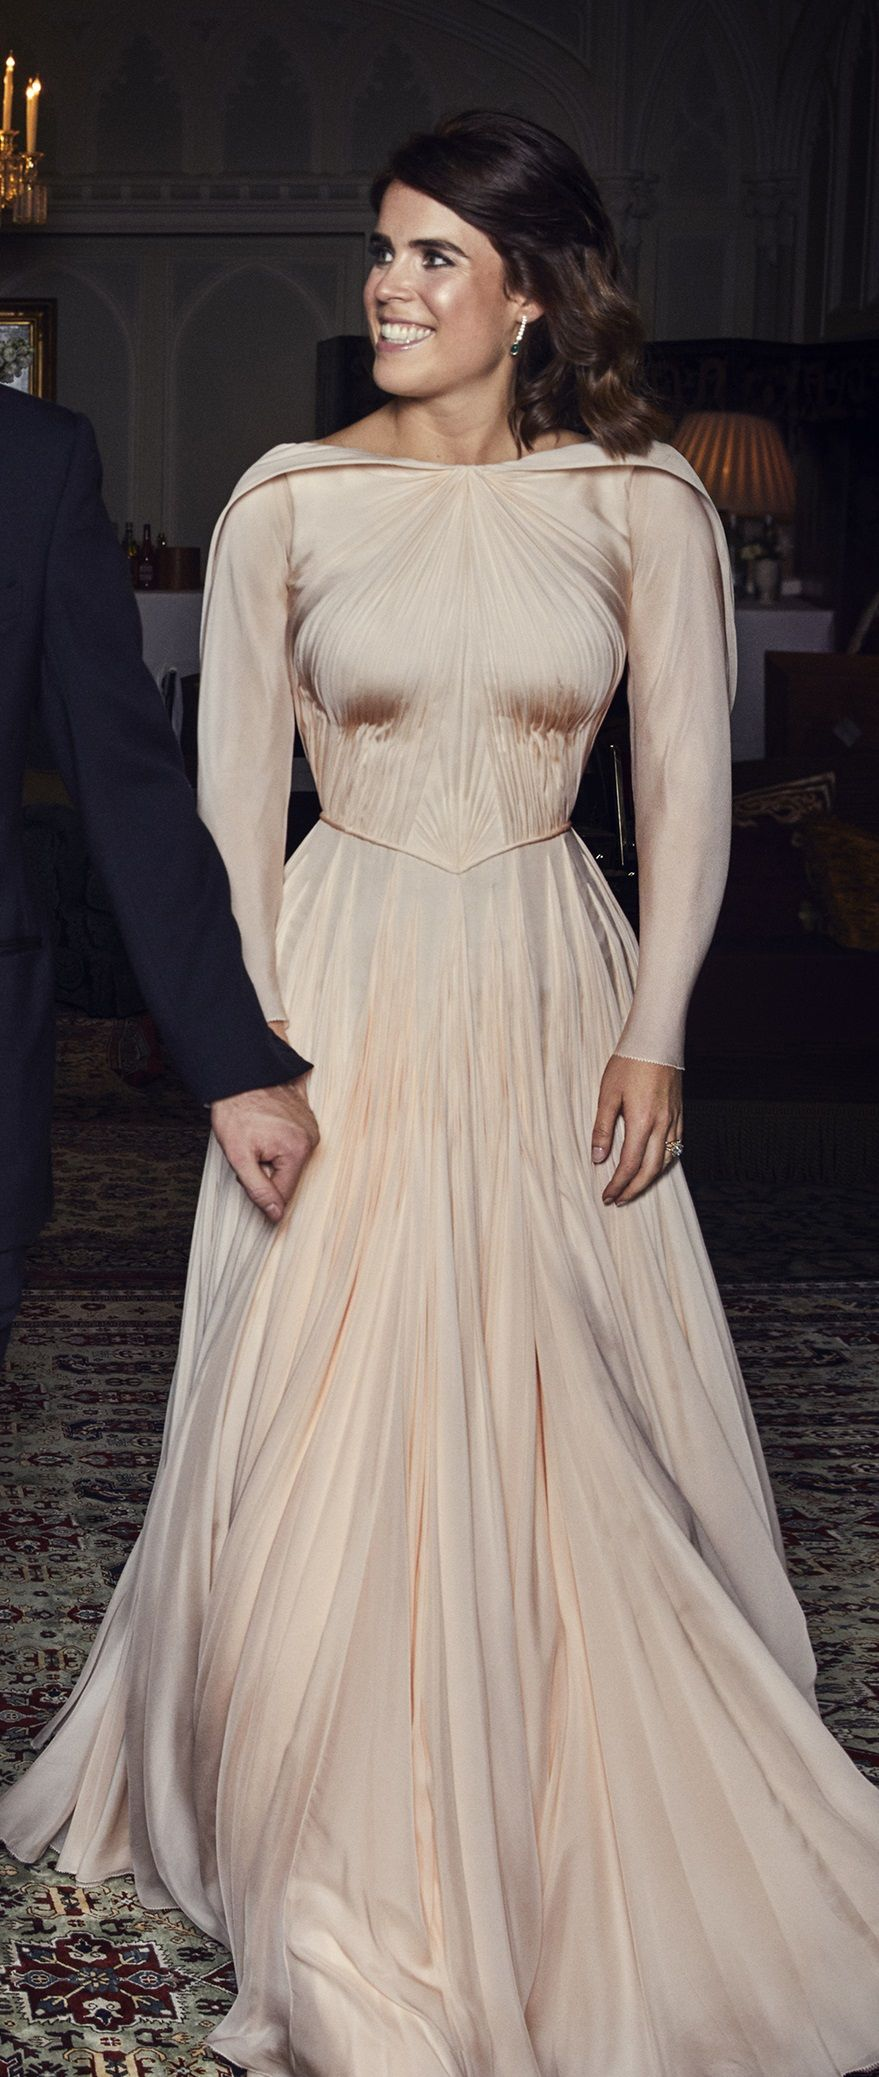 Princess Eugenie Wore An Evening Gown Designed By Zac Posen On Her Wedding Reception Dresses Royal Dresses Eugenie Wedding [ 2077 x 879 Pixel ]